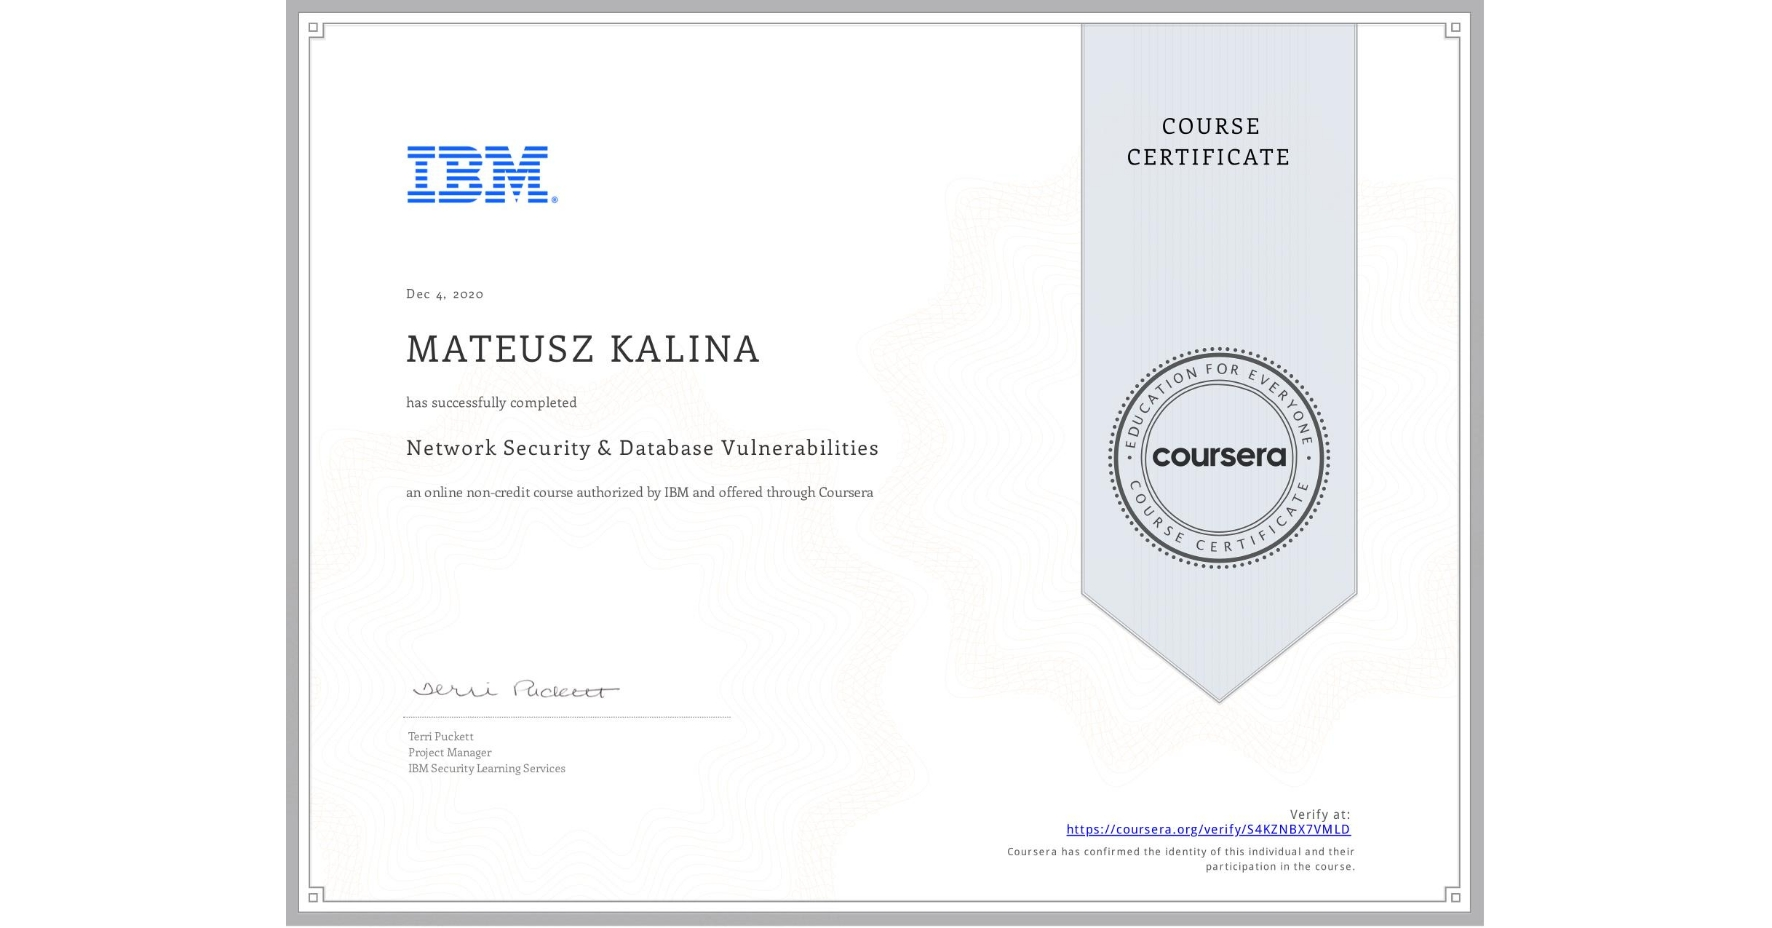 View certificate for MATEUSZ KALINA, Network Security & Database Vulnerabilities , an online non-credit course authorized by IBM and offered through Coursera